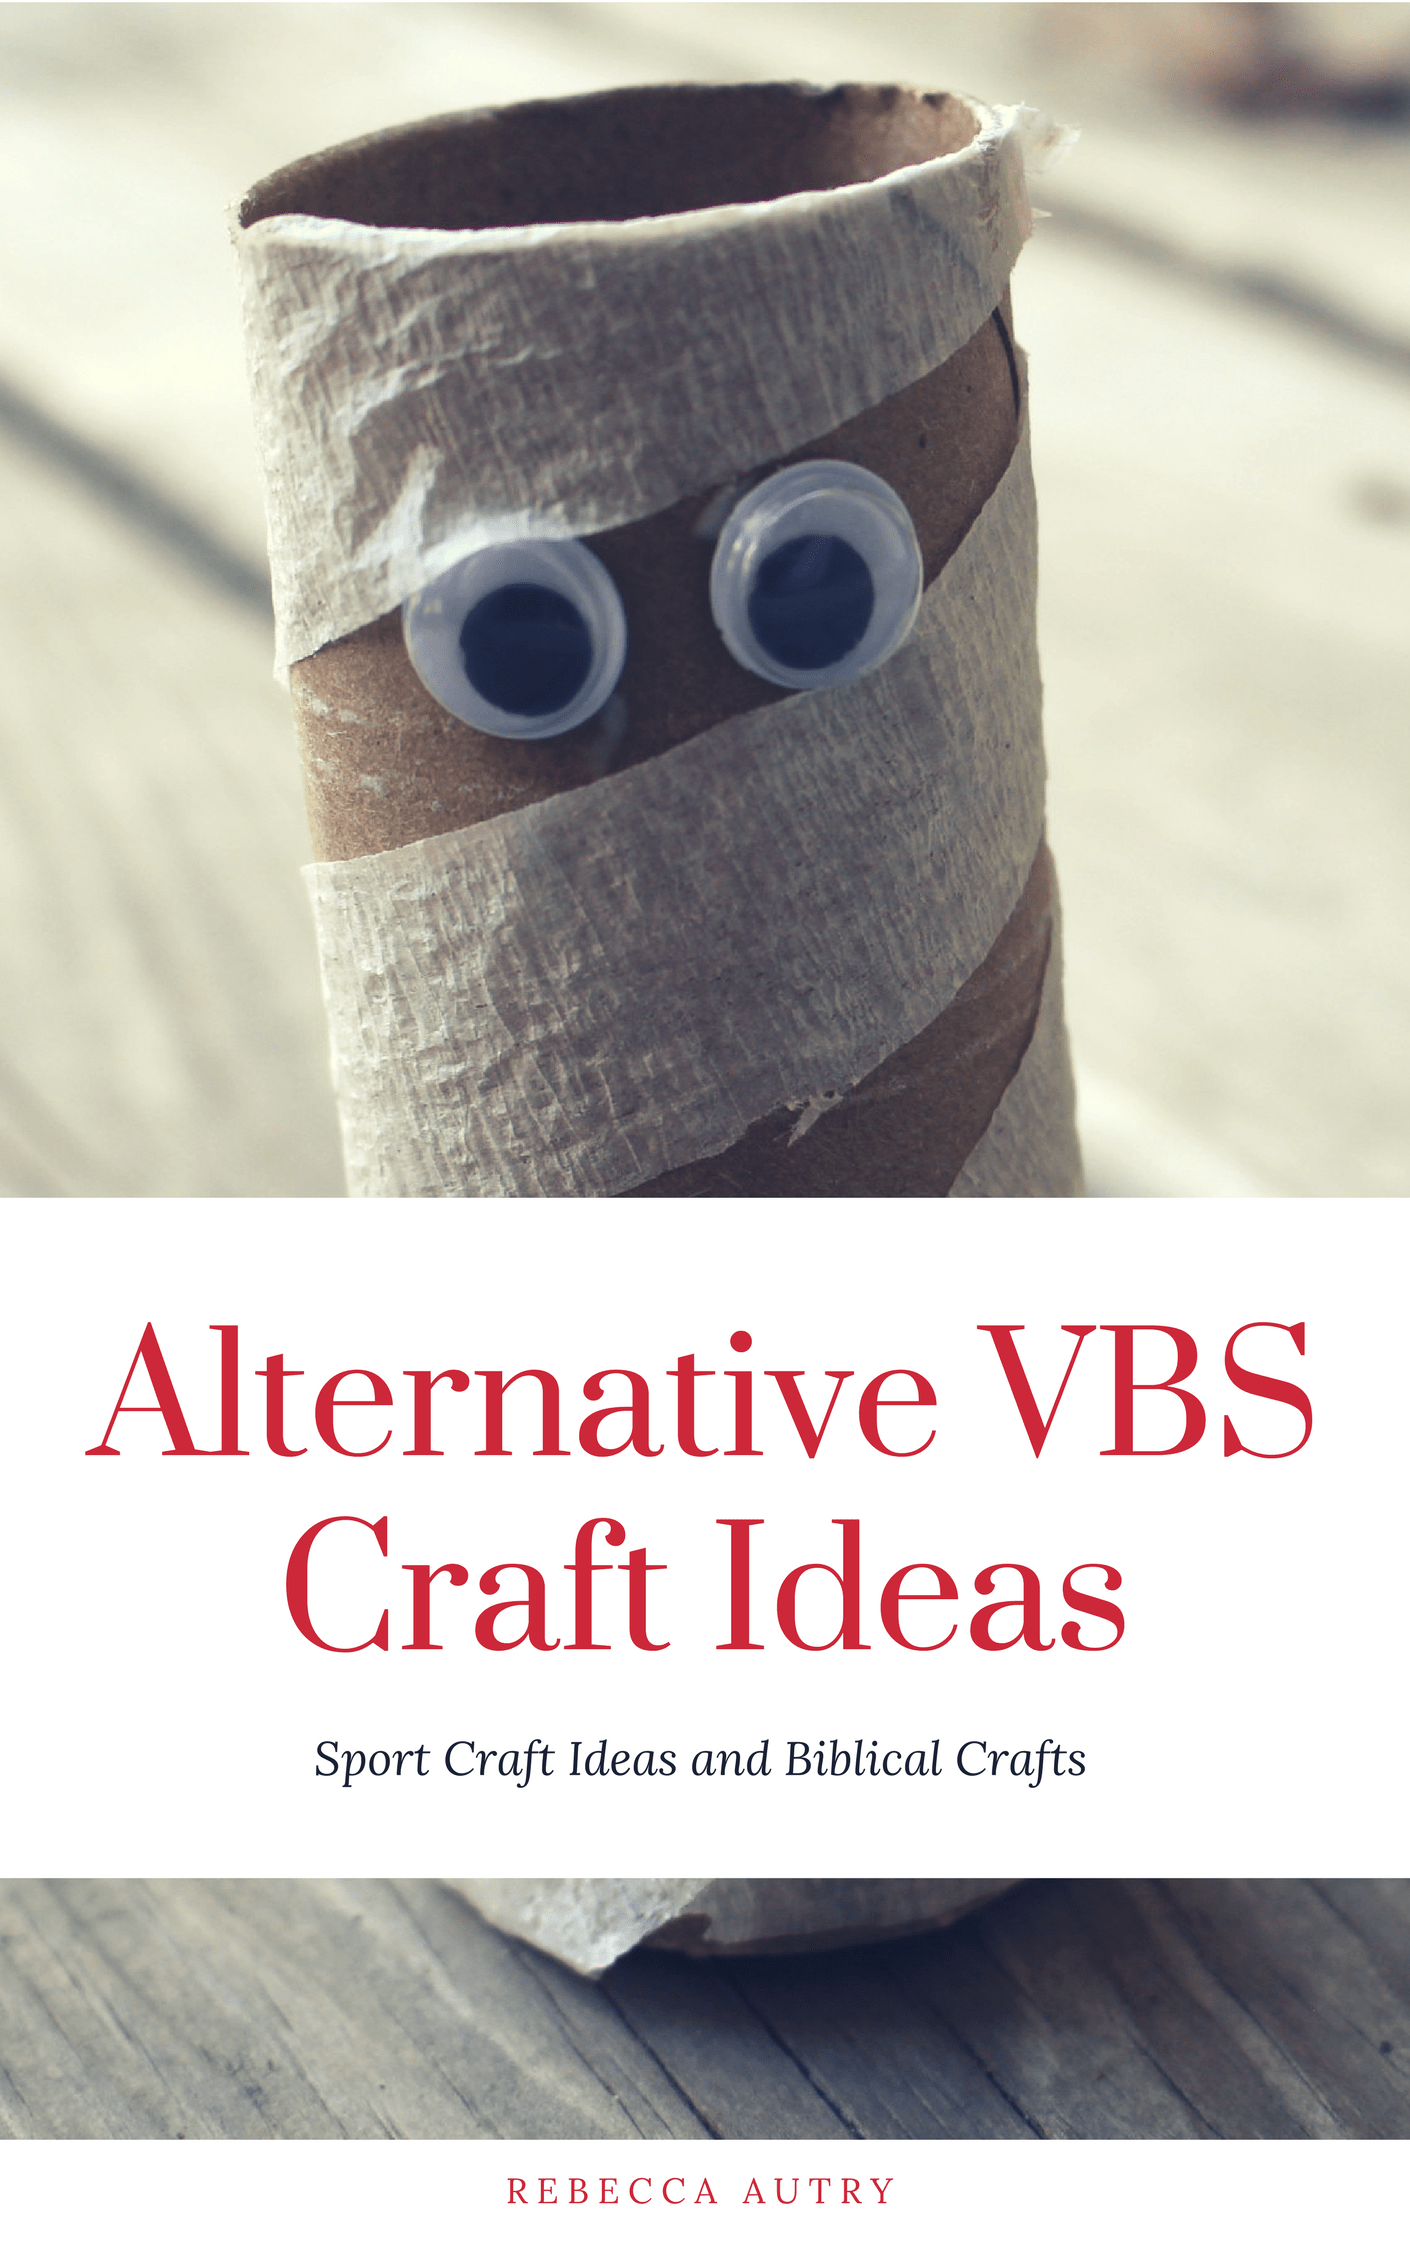 Alternative Vbs 2018 Craft Ideas Ebook Rebecca Autry Creations